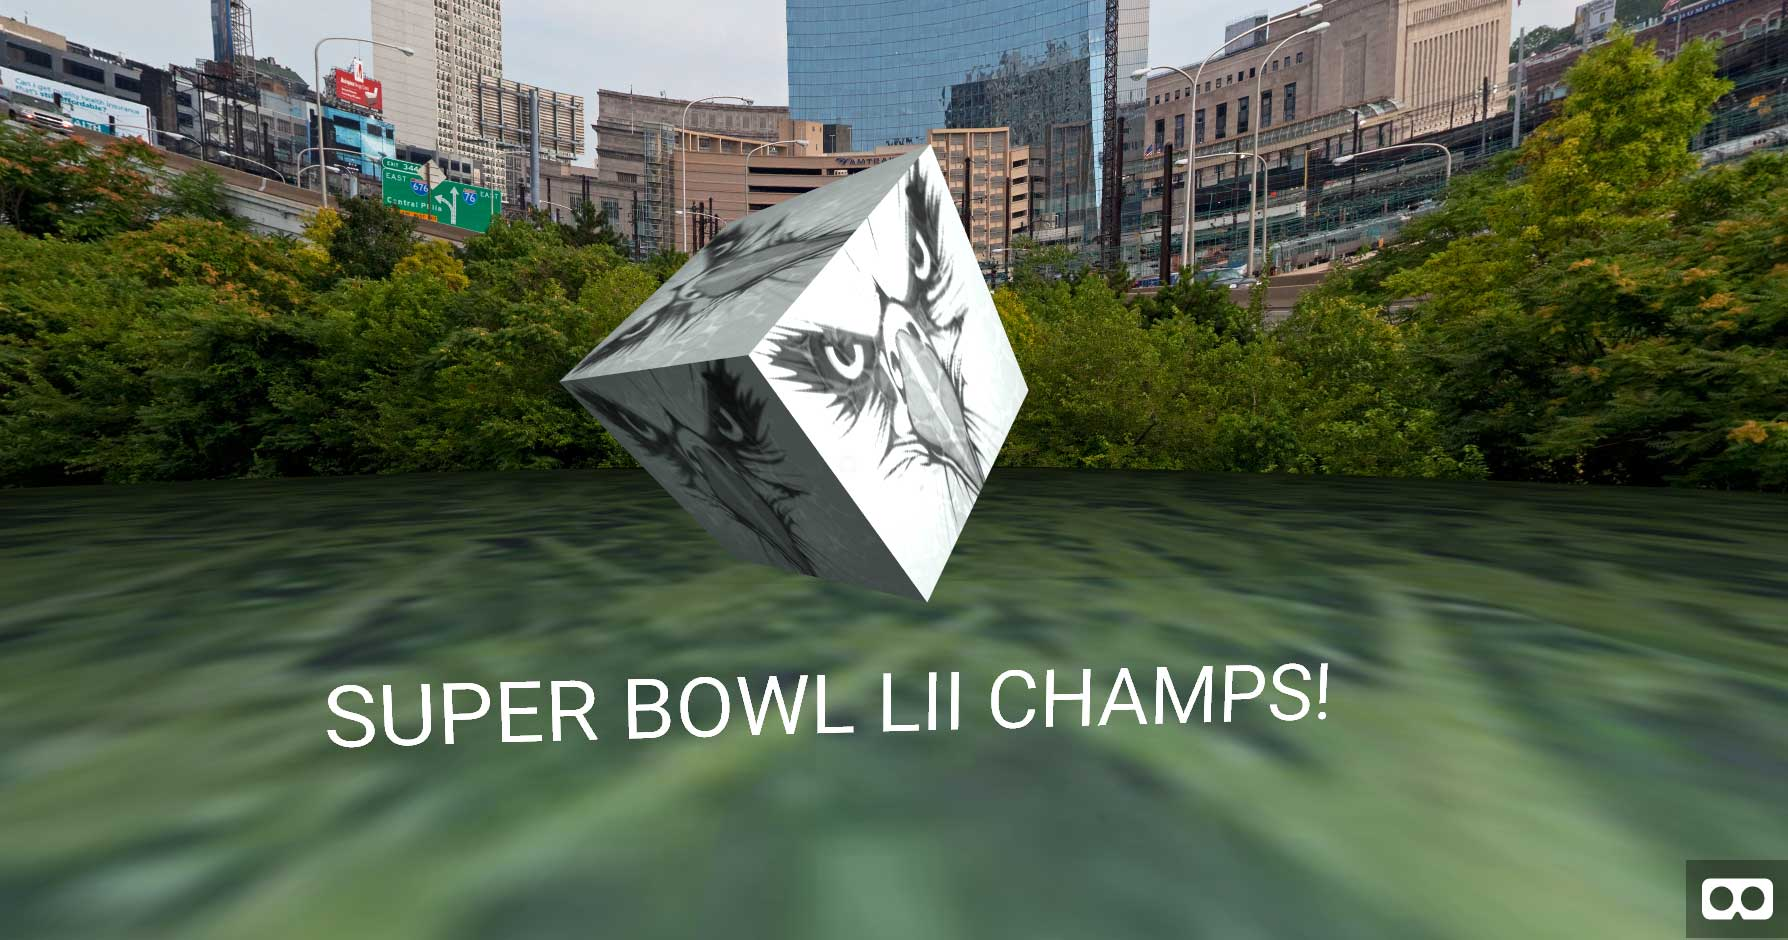 Our WebVR Tribute to Philadelphia for Super Bowl LII with Mozilla's A-FRAME VR